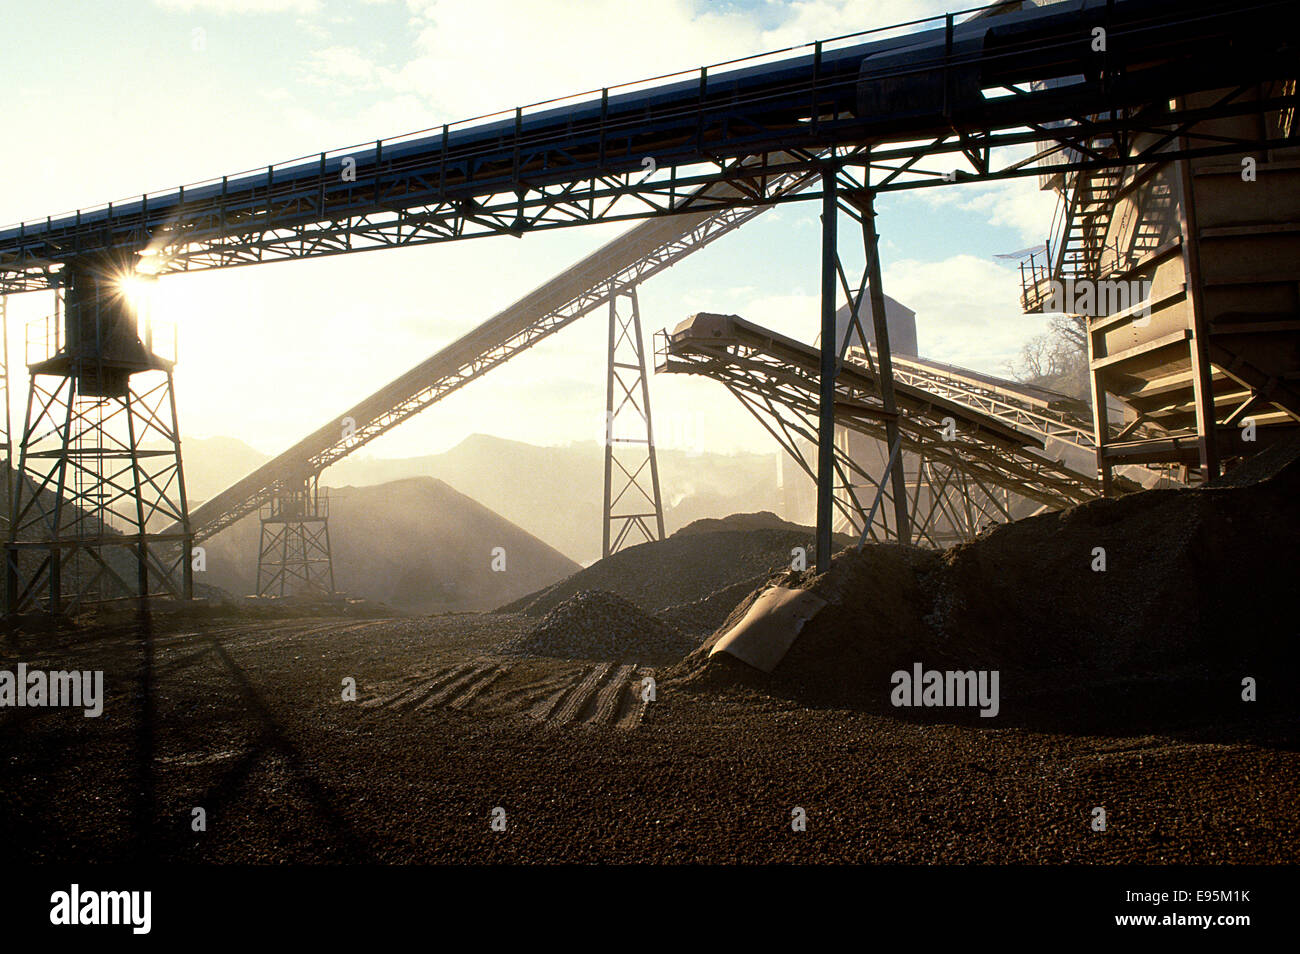 Industry coal yard - Stock Image